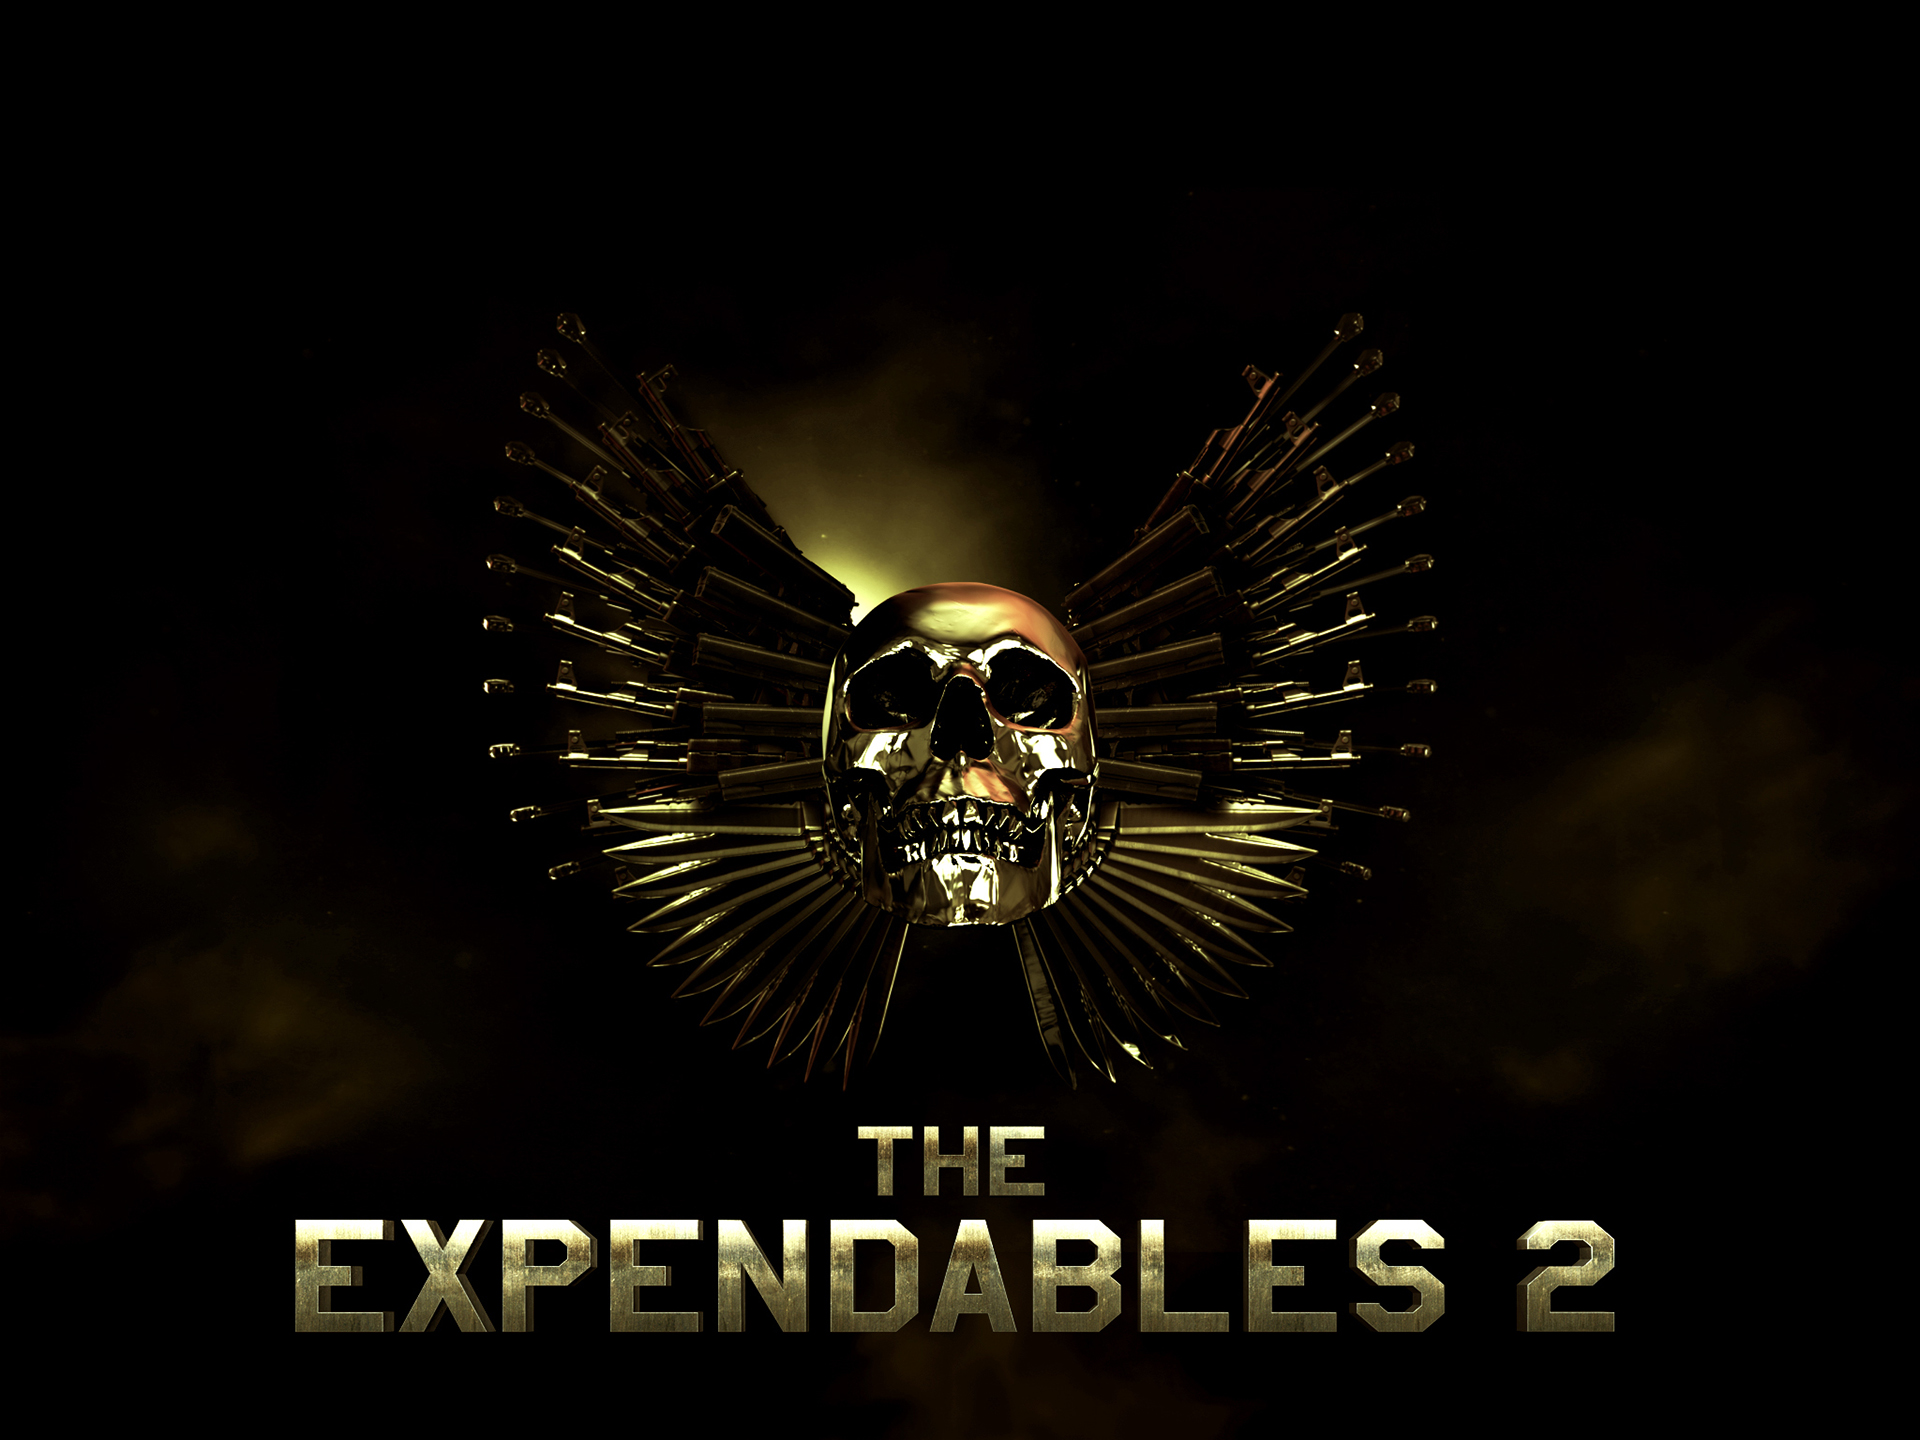 The Expendables 2 - The Expendables Wallpaper (30989769) - Fanpop